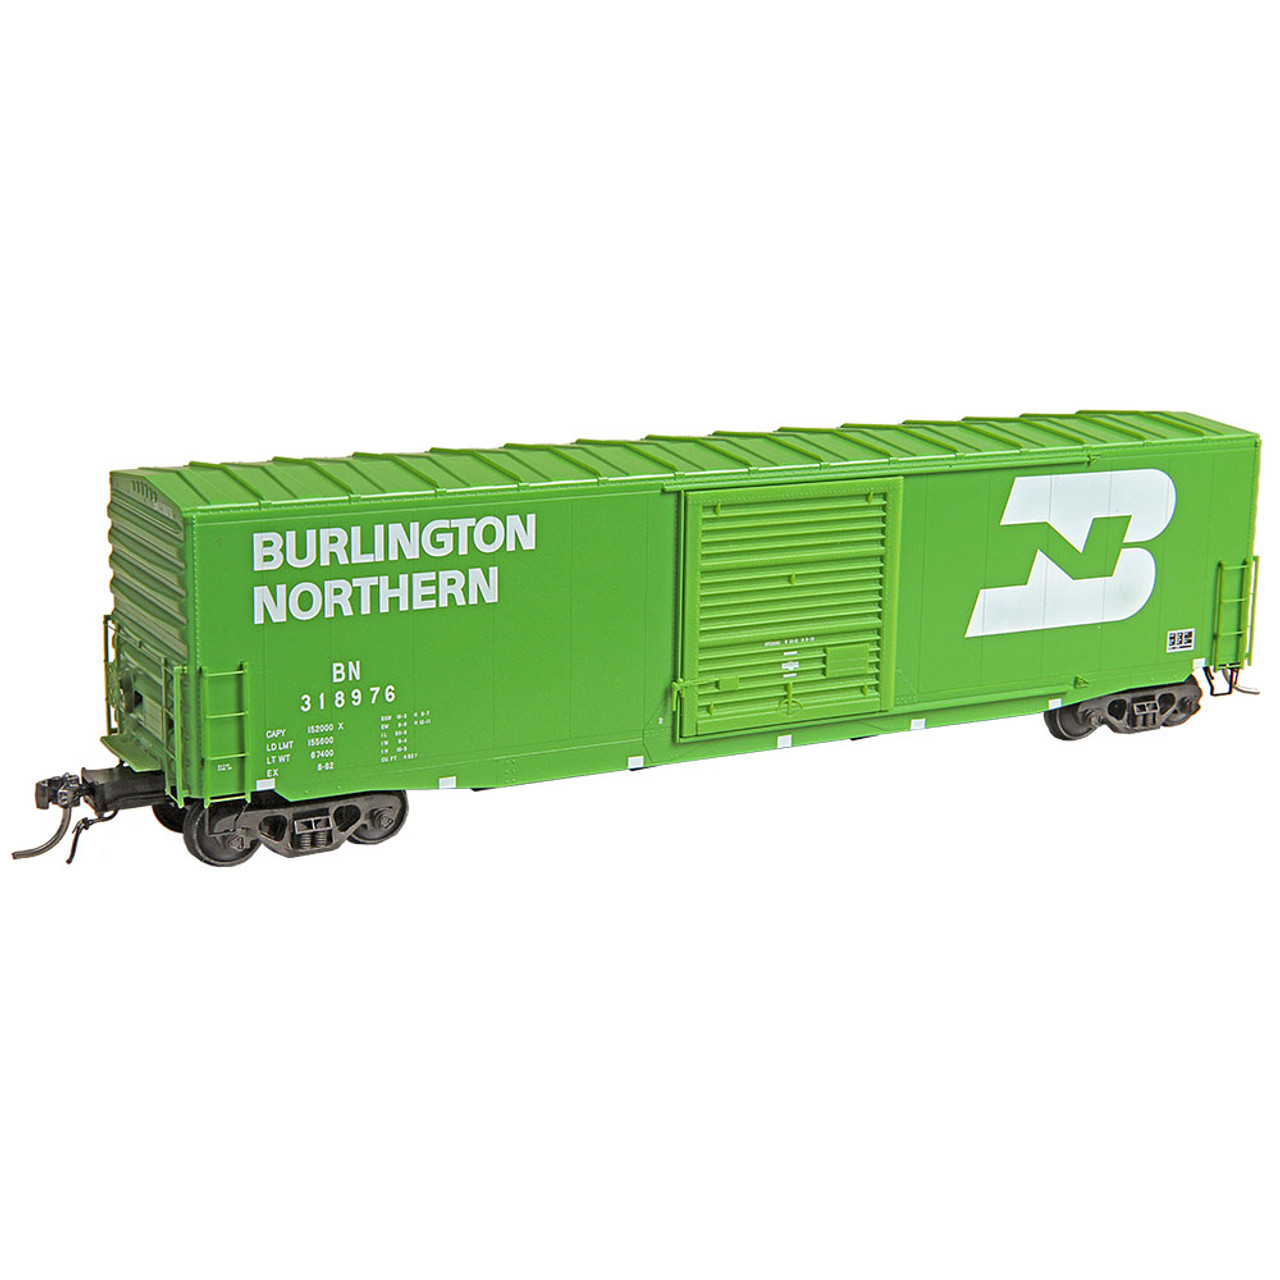 Kadee 6415  Burlington Northern BN #318976 - RTR 50' PS-1 Boxcar (SCALE=HO) part # 380-6415